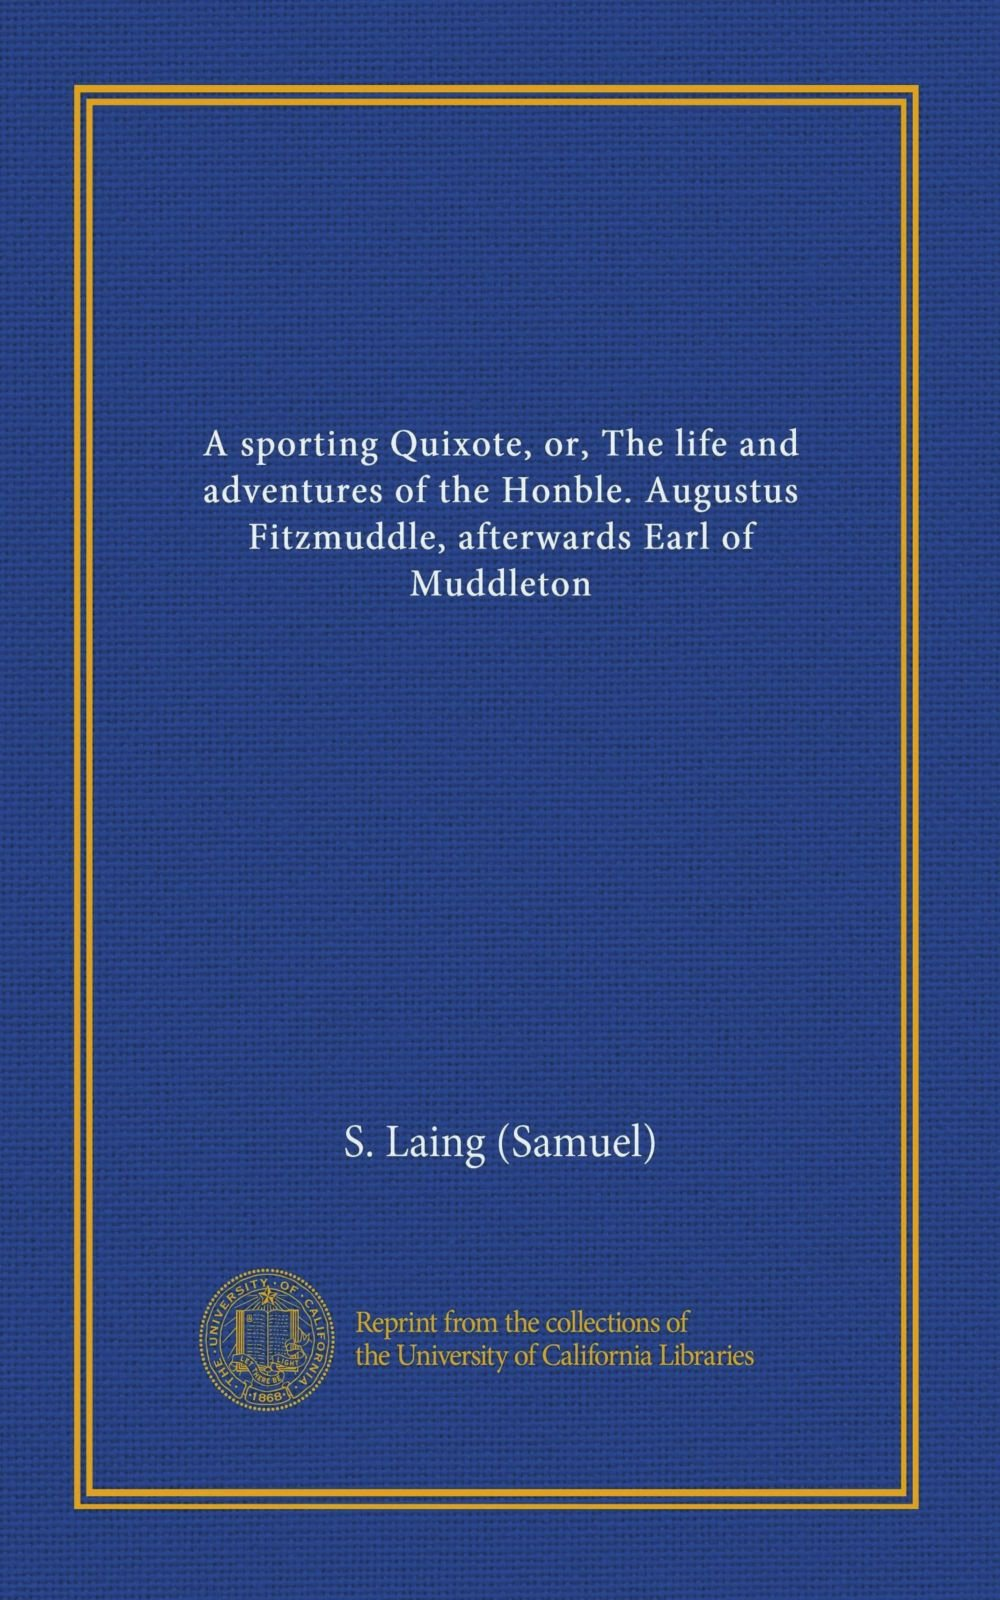 Download A sporting Quixote, or, The life and adventures of the Honble. Augustus Fitzmuddle, afterwards Earl of Muddleton (Vol-1) ebook